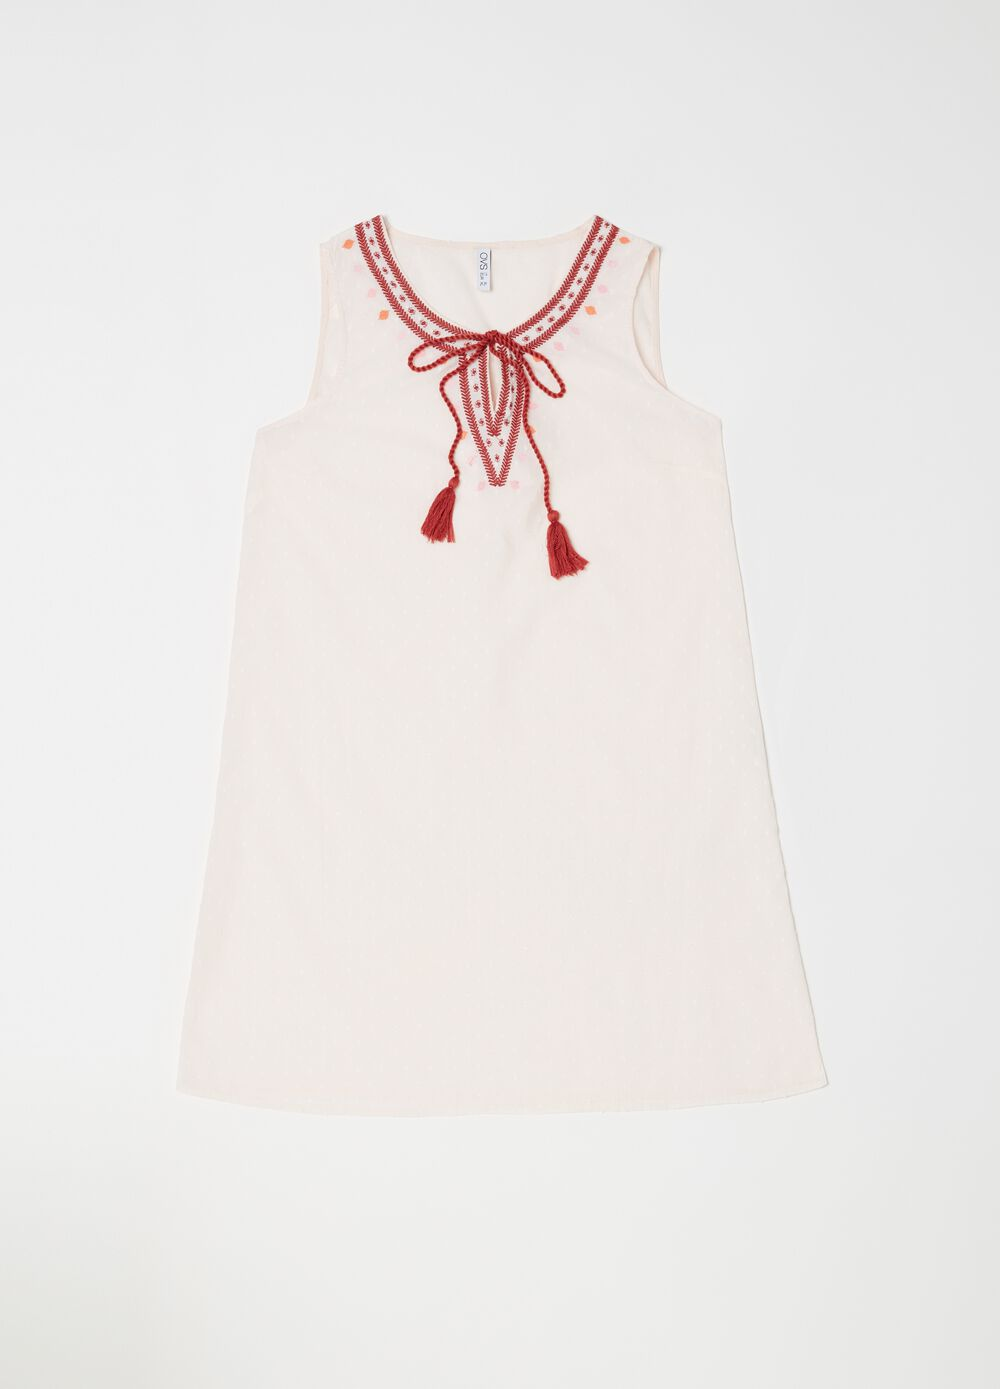 Sleeveless nightshirt with laces